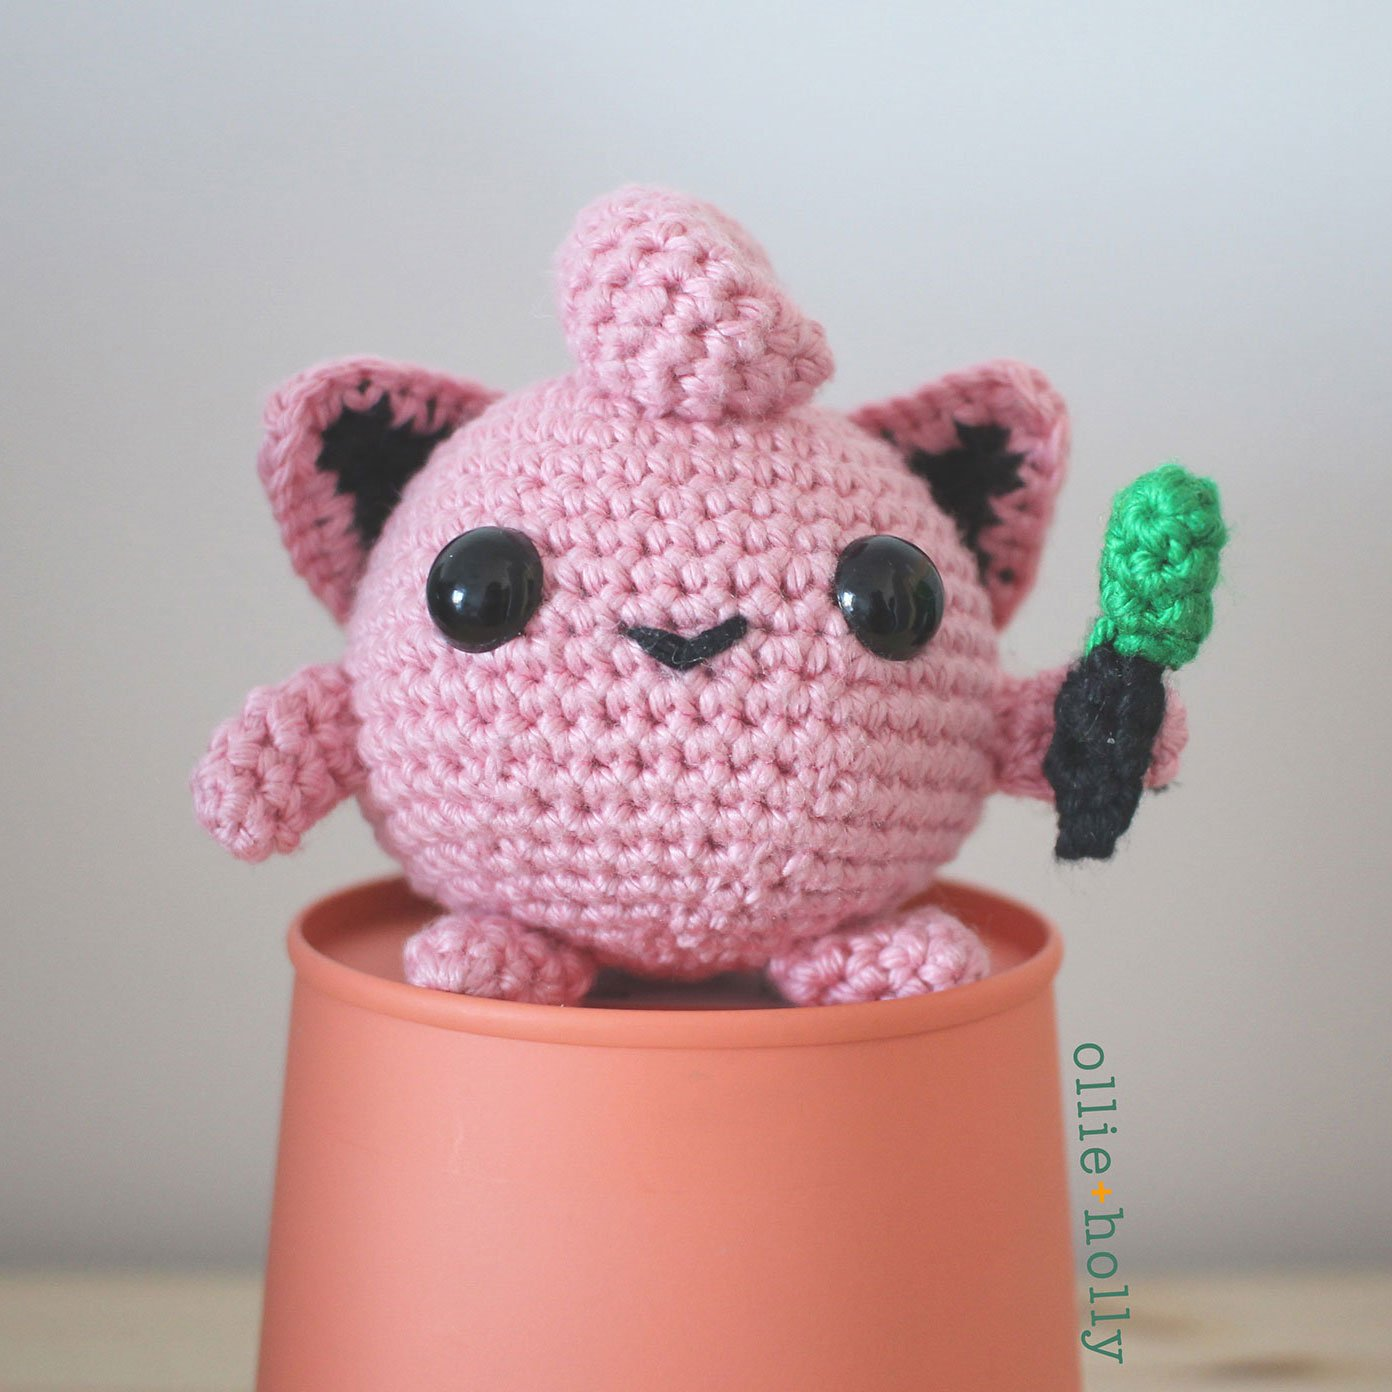 Nerdigurumi - Free Amigurumi Crochet Patterns with love for the ... | 1392x1392